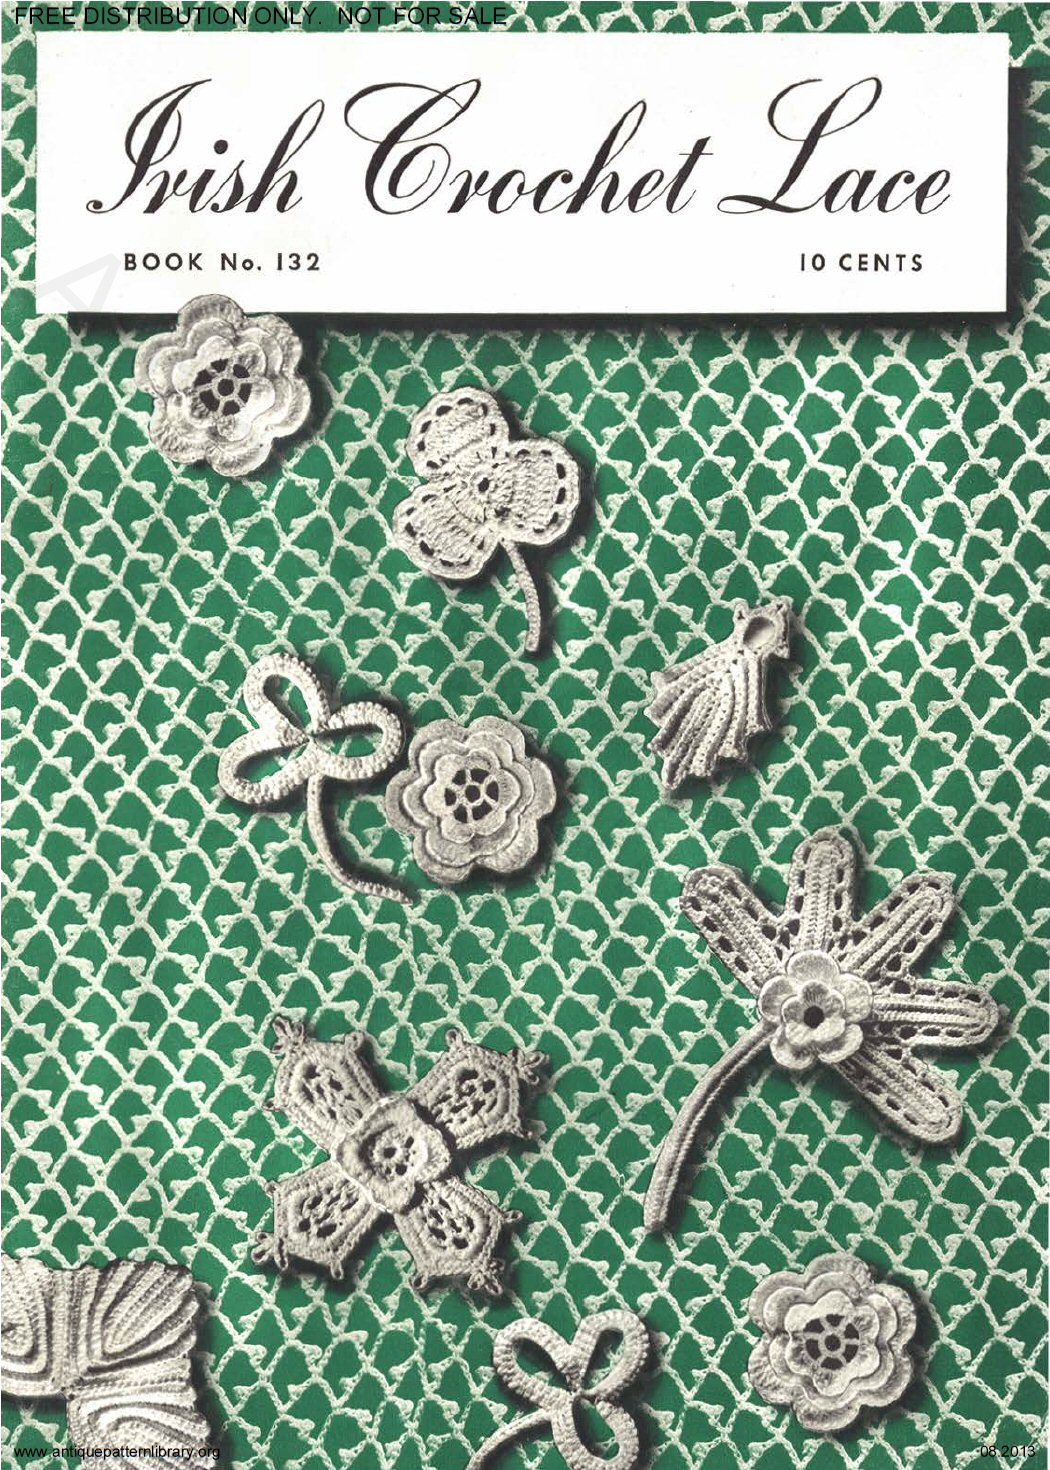 Antique Pattern Library Crochet | antique pattern library ...